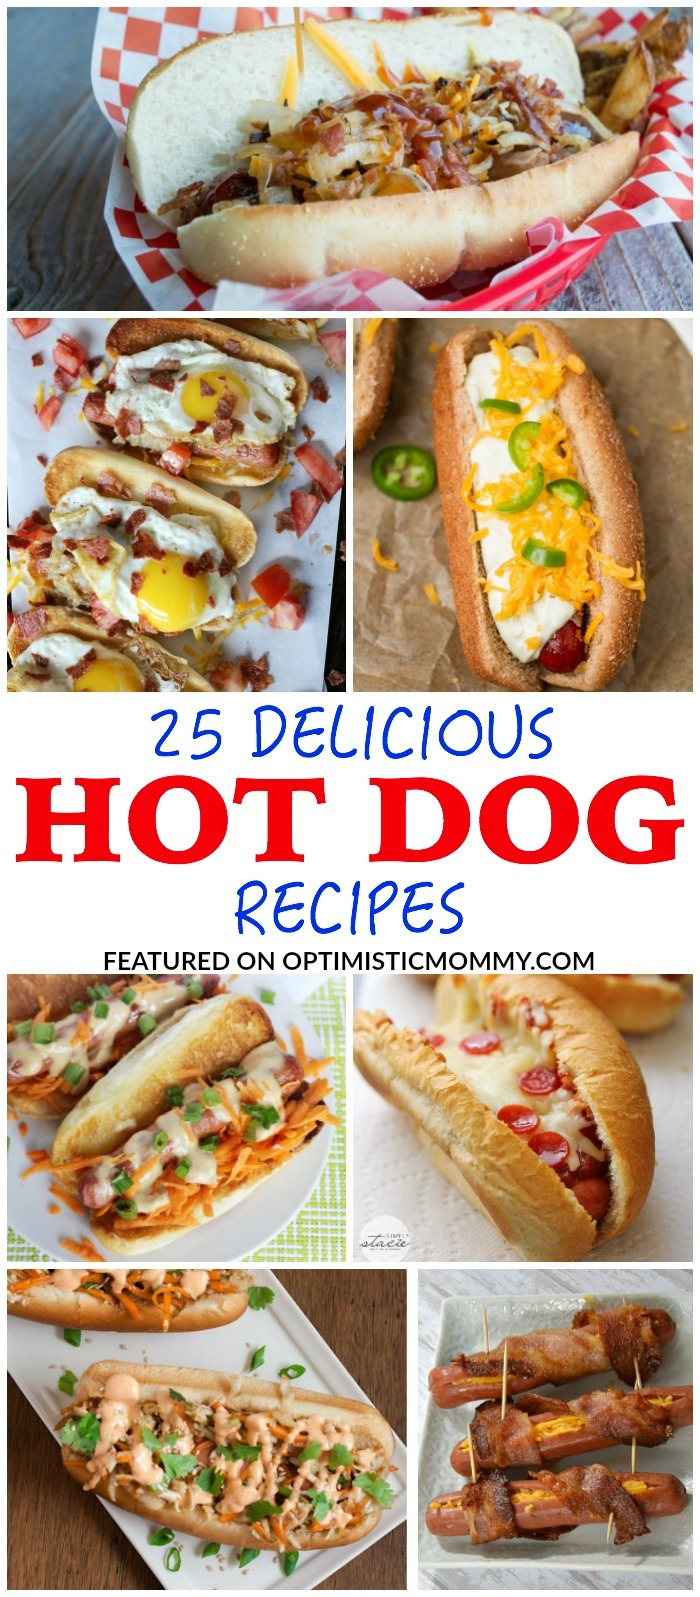 These delicious hot dog recipes are perfect for celebrating National Hot Dog Day!